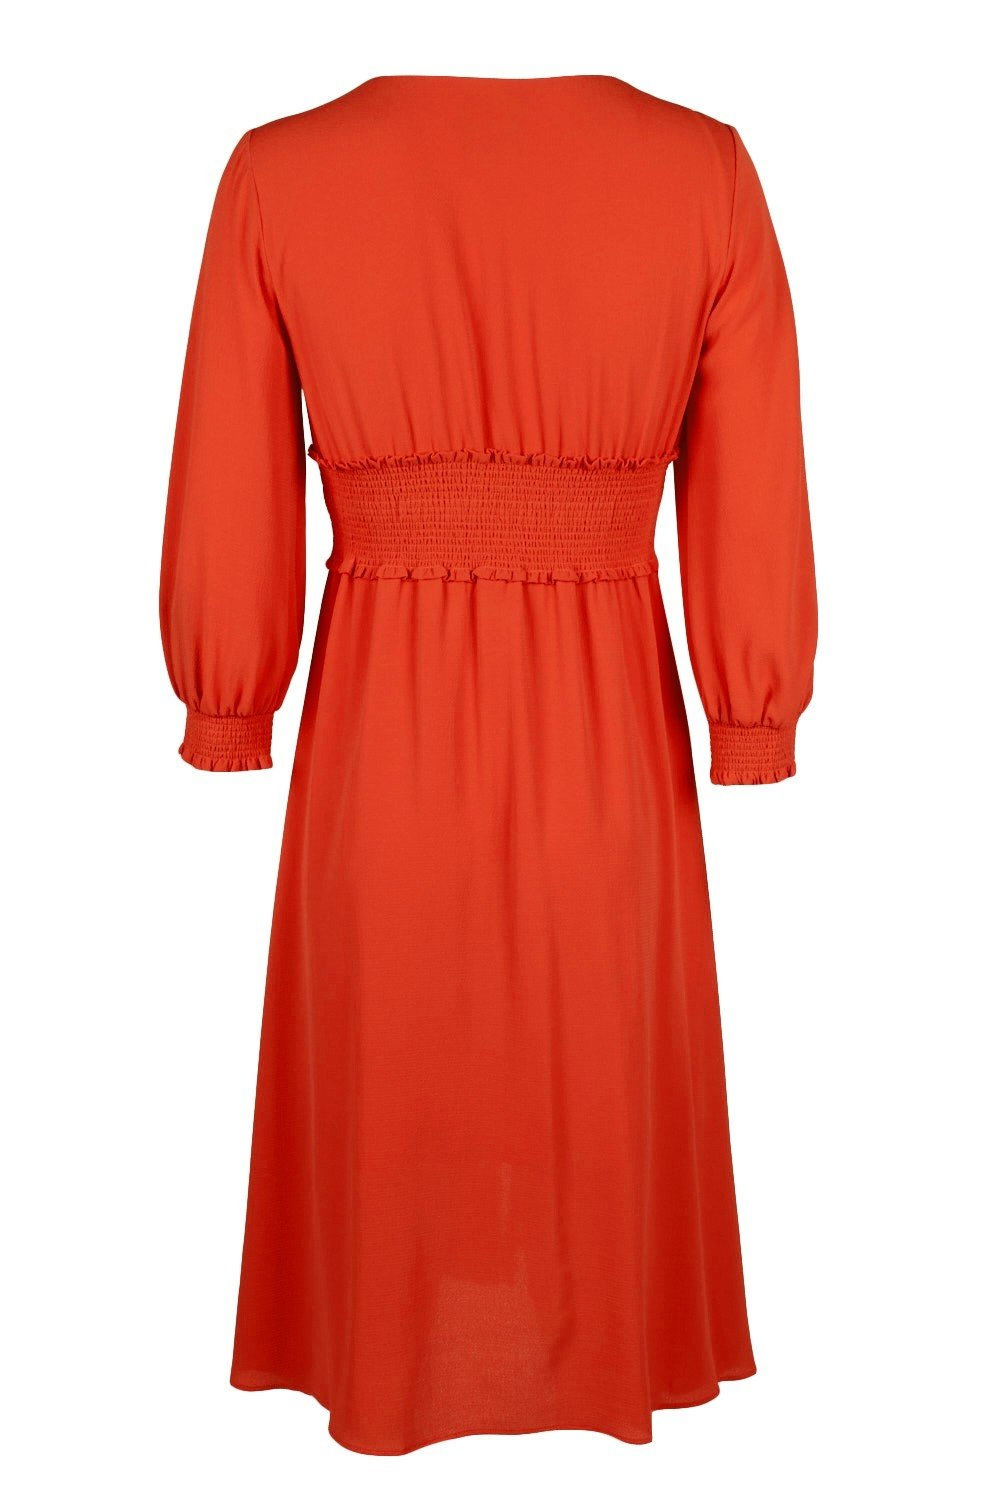 Adrianna Papell - AP1D103500 Long Sleeve V-neck Ruched A-line Dress In Orange